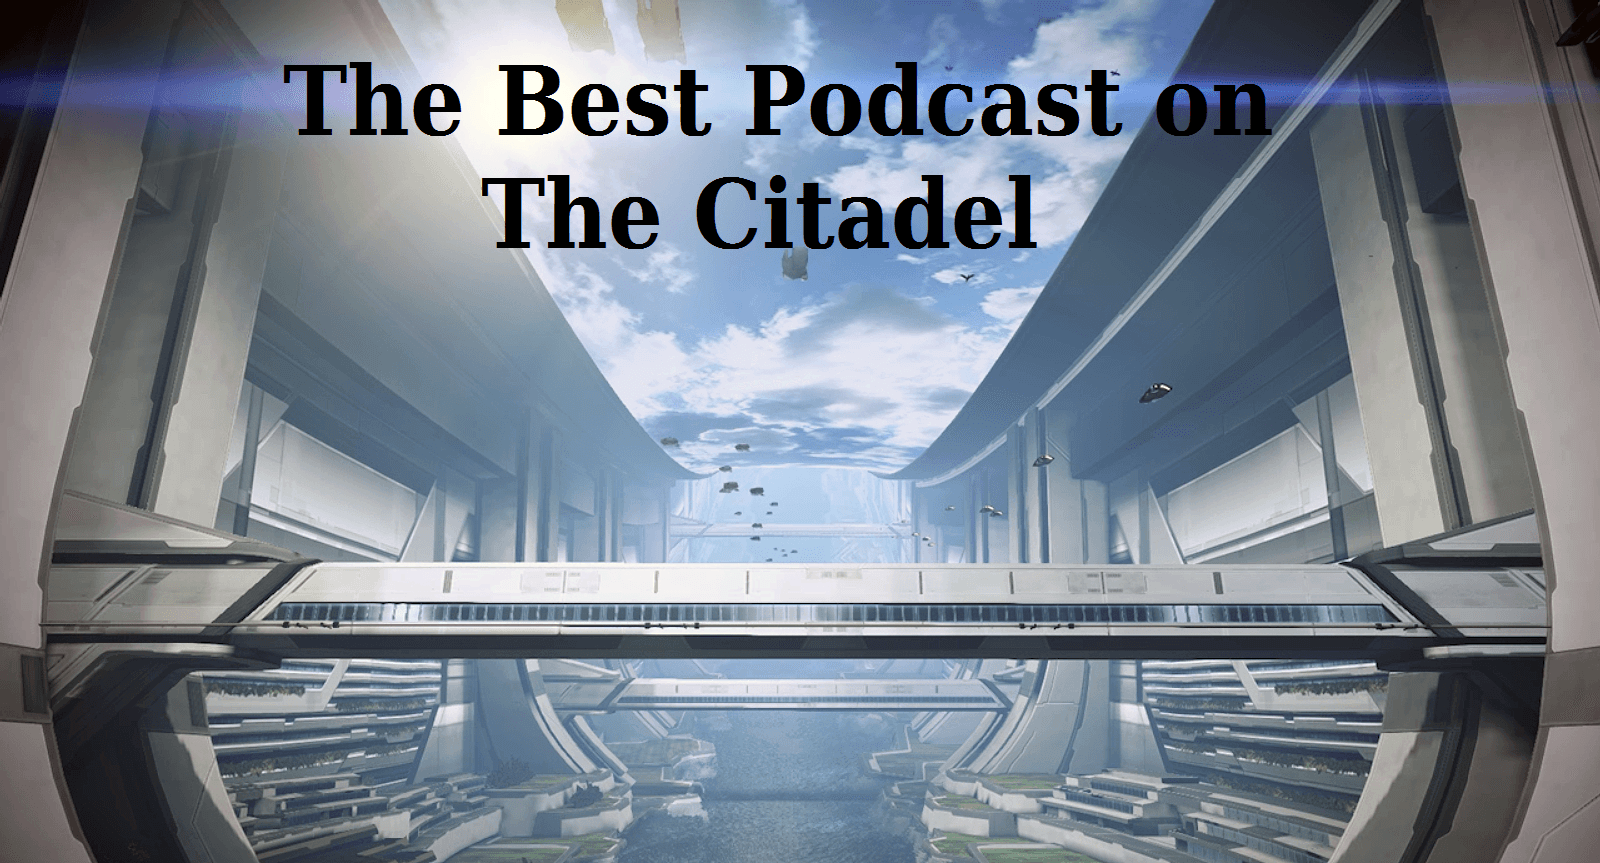 The Best Podcast on the Citadel, Ep. 40